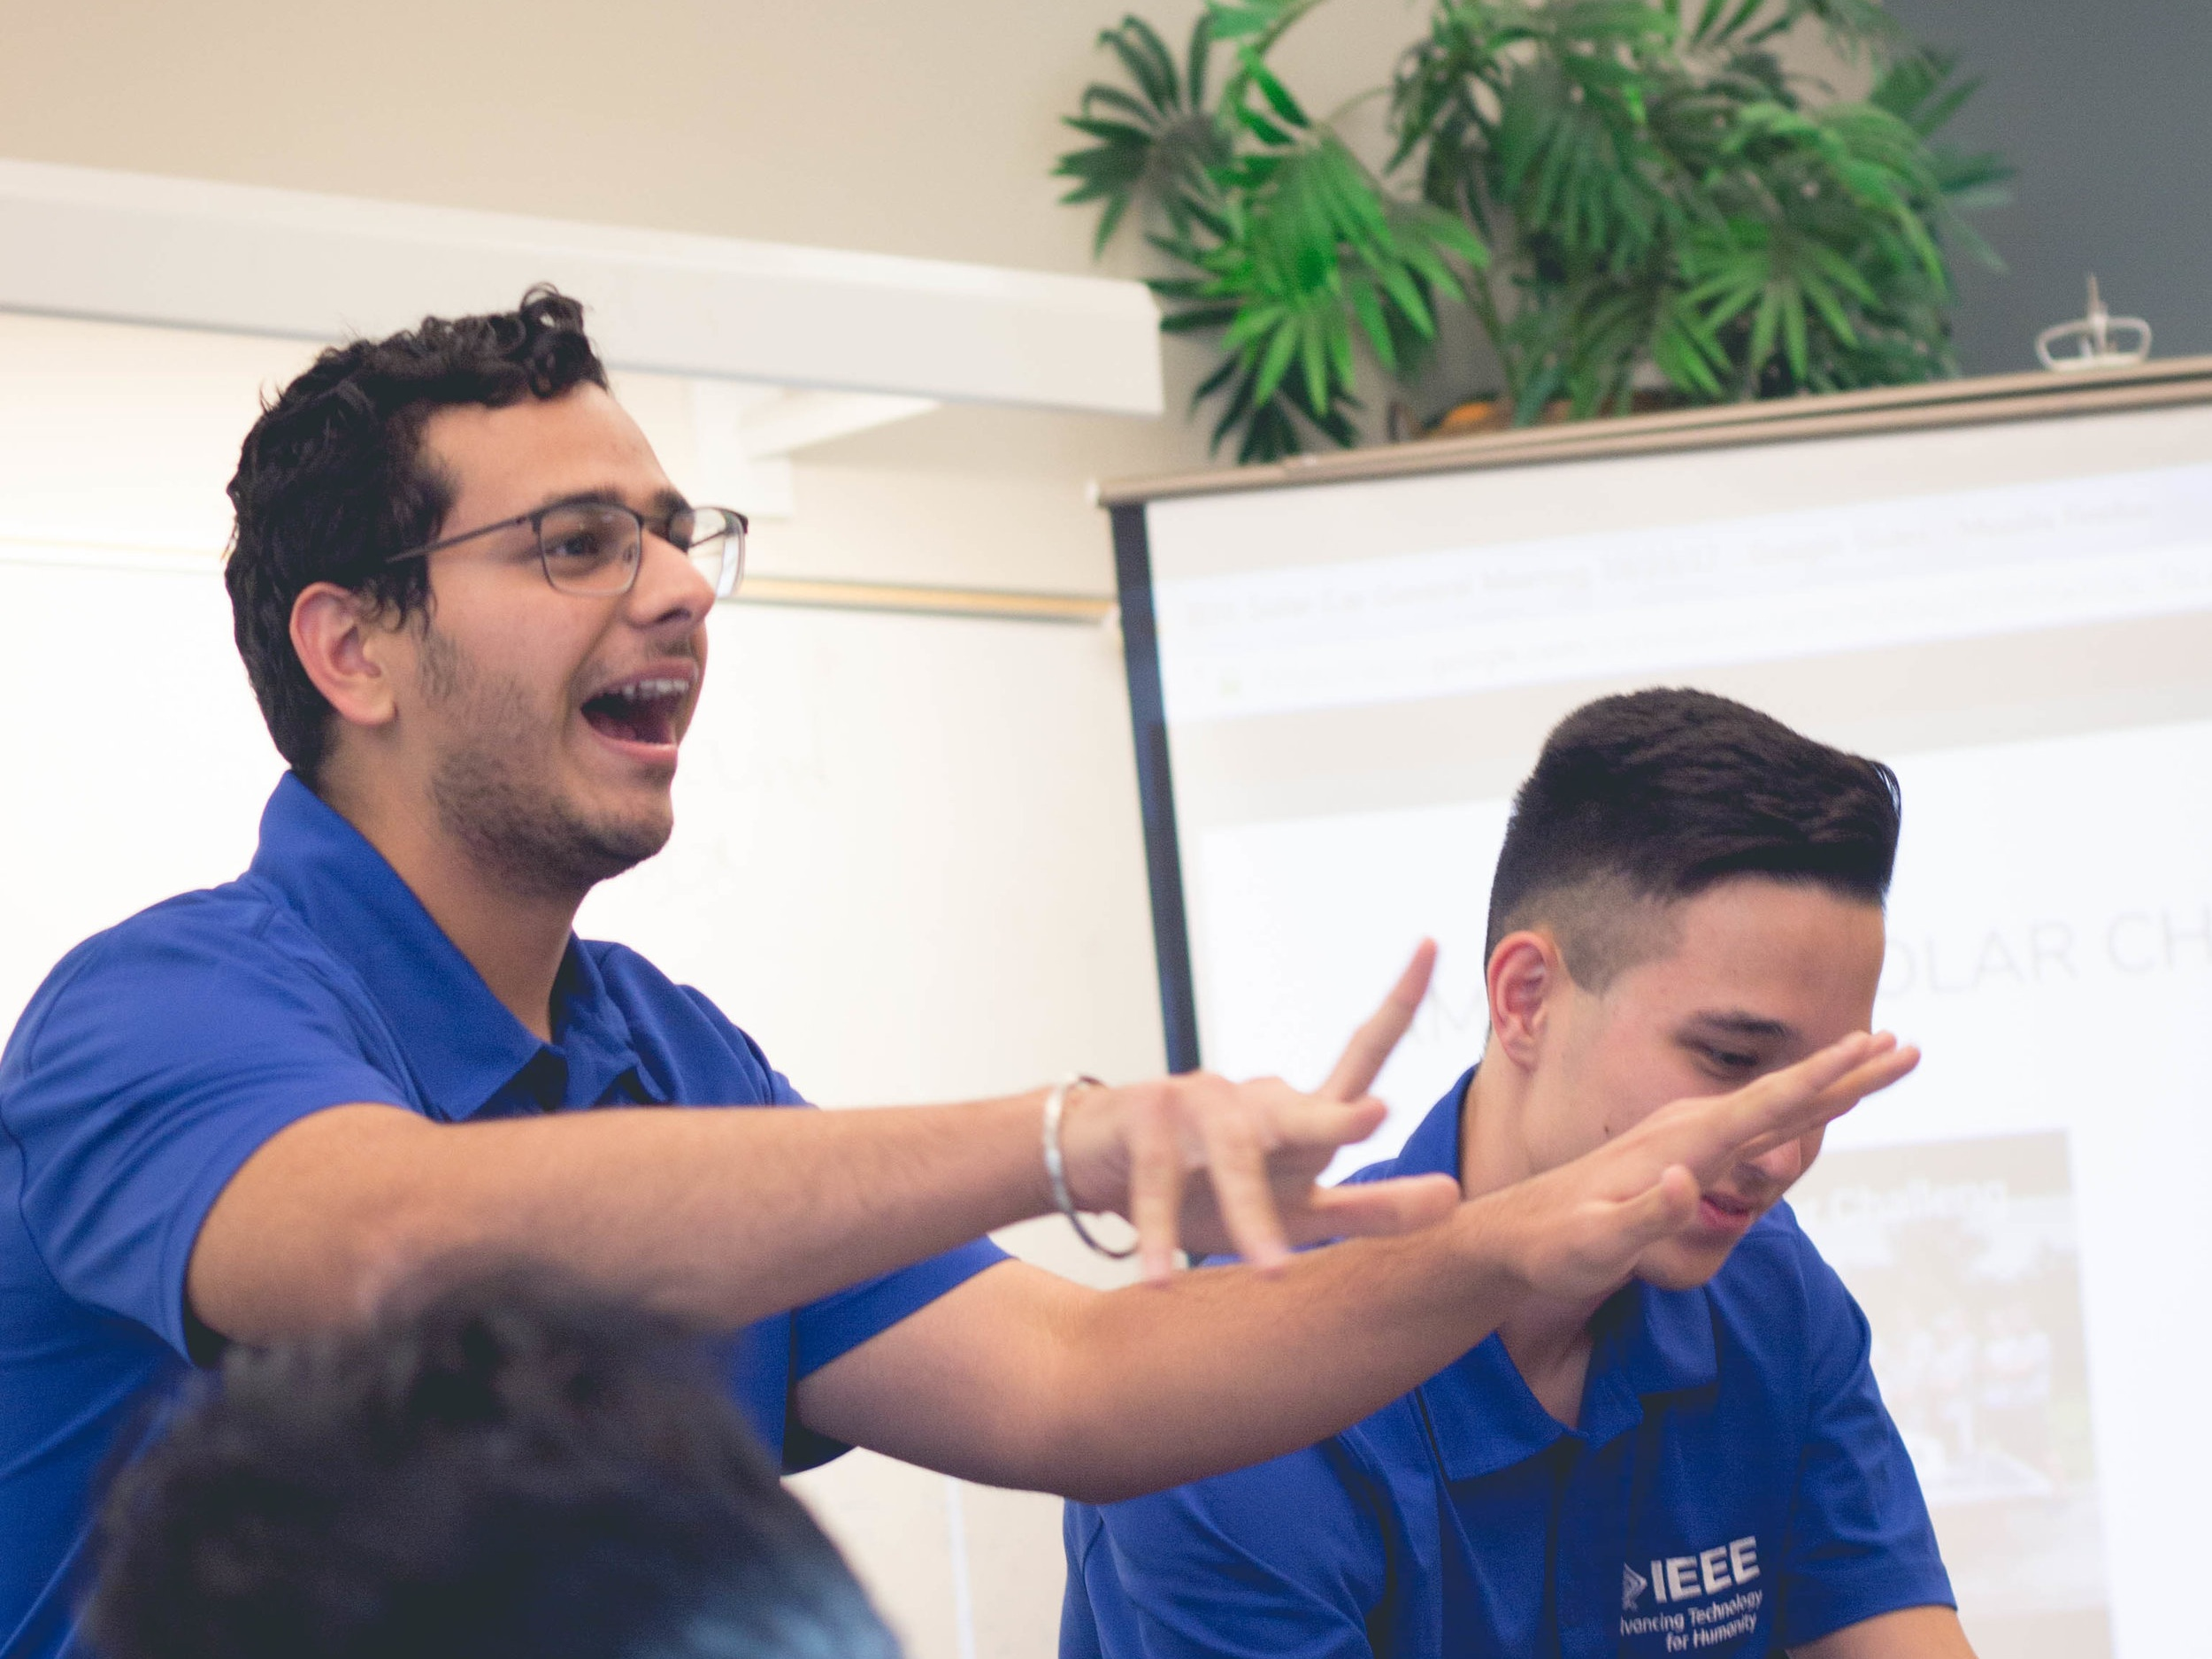 Leadership - The UCR Solar Car team encourages members to be strong leaders in their perspective industries and smart decision makers.